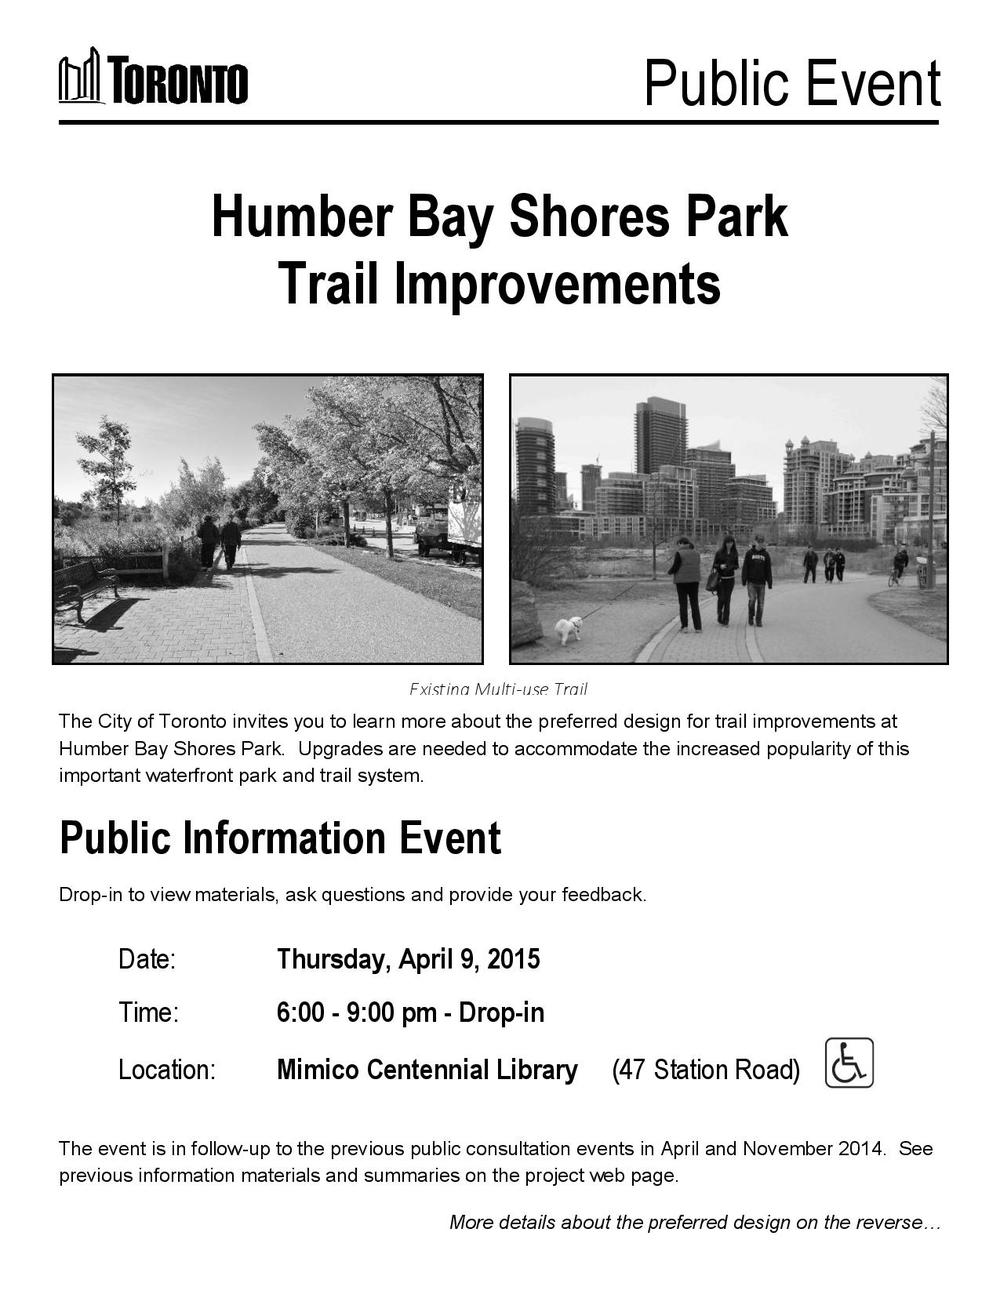 03 16 15 Humber - Public Event Flyer LE-page-001.jpg